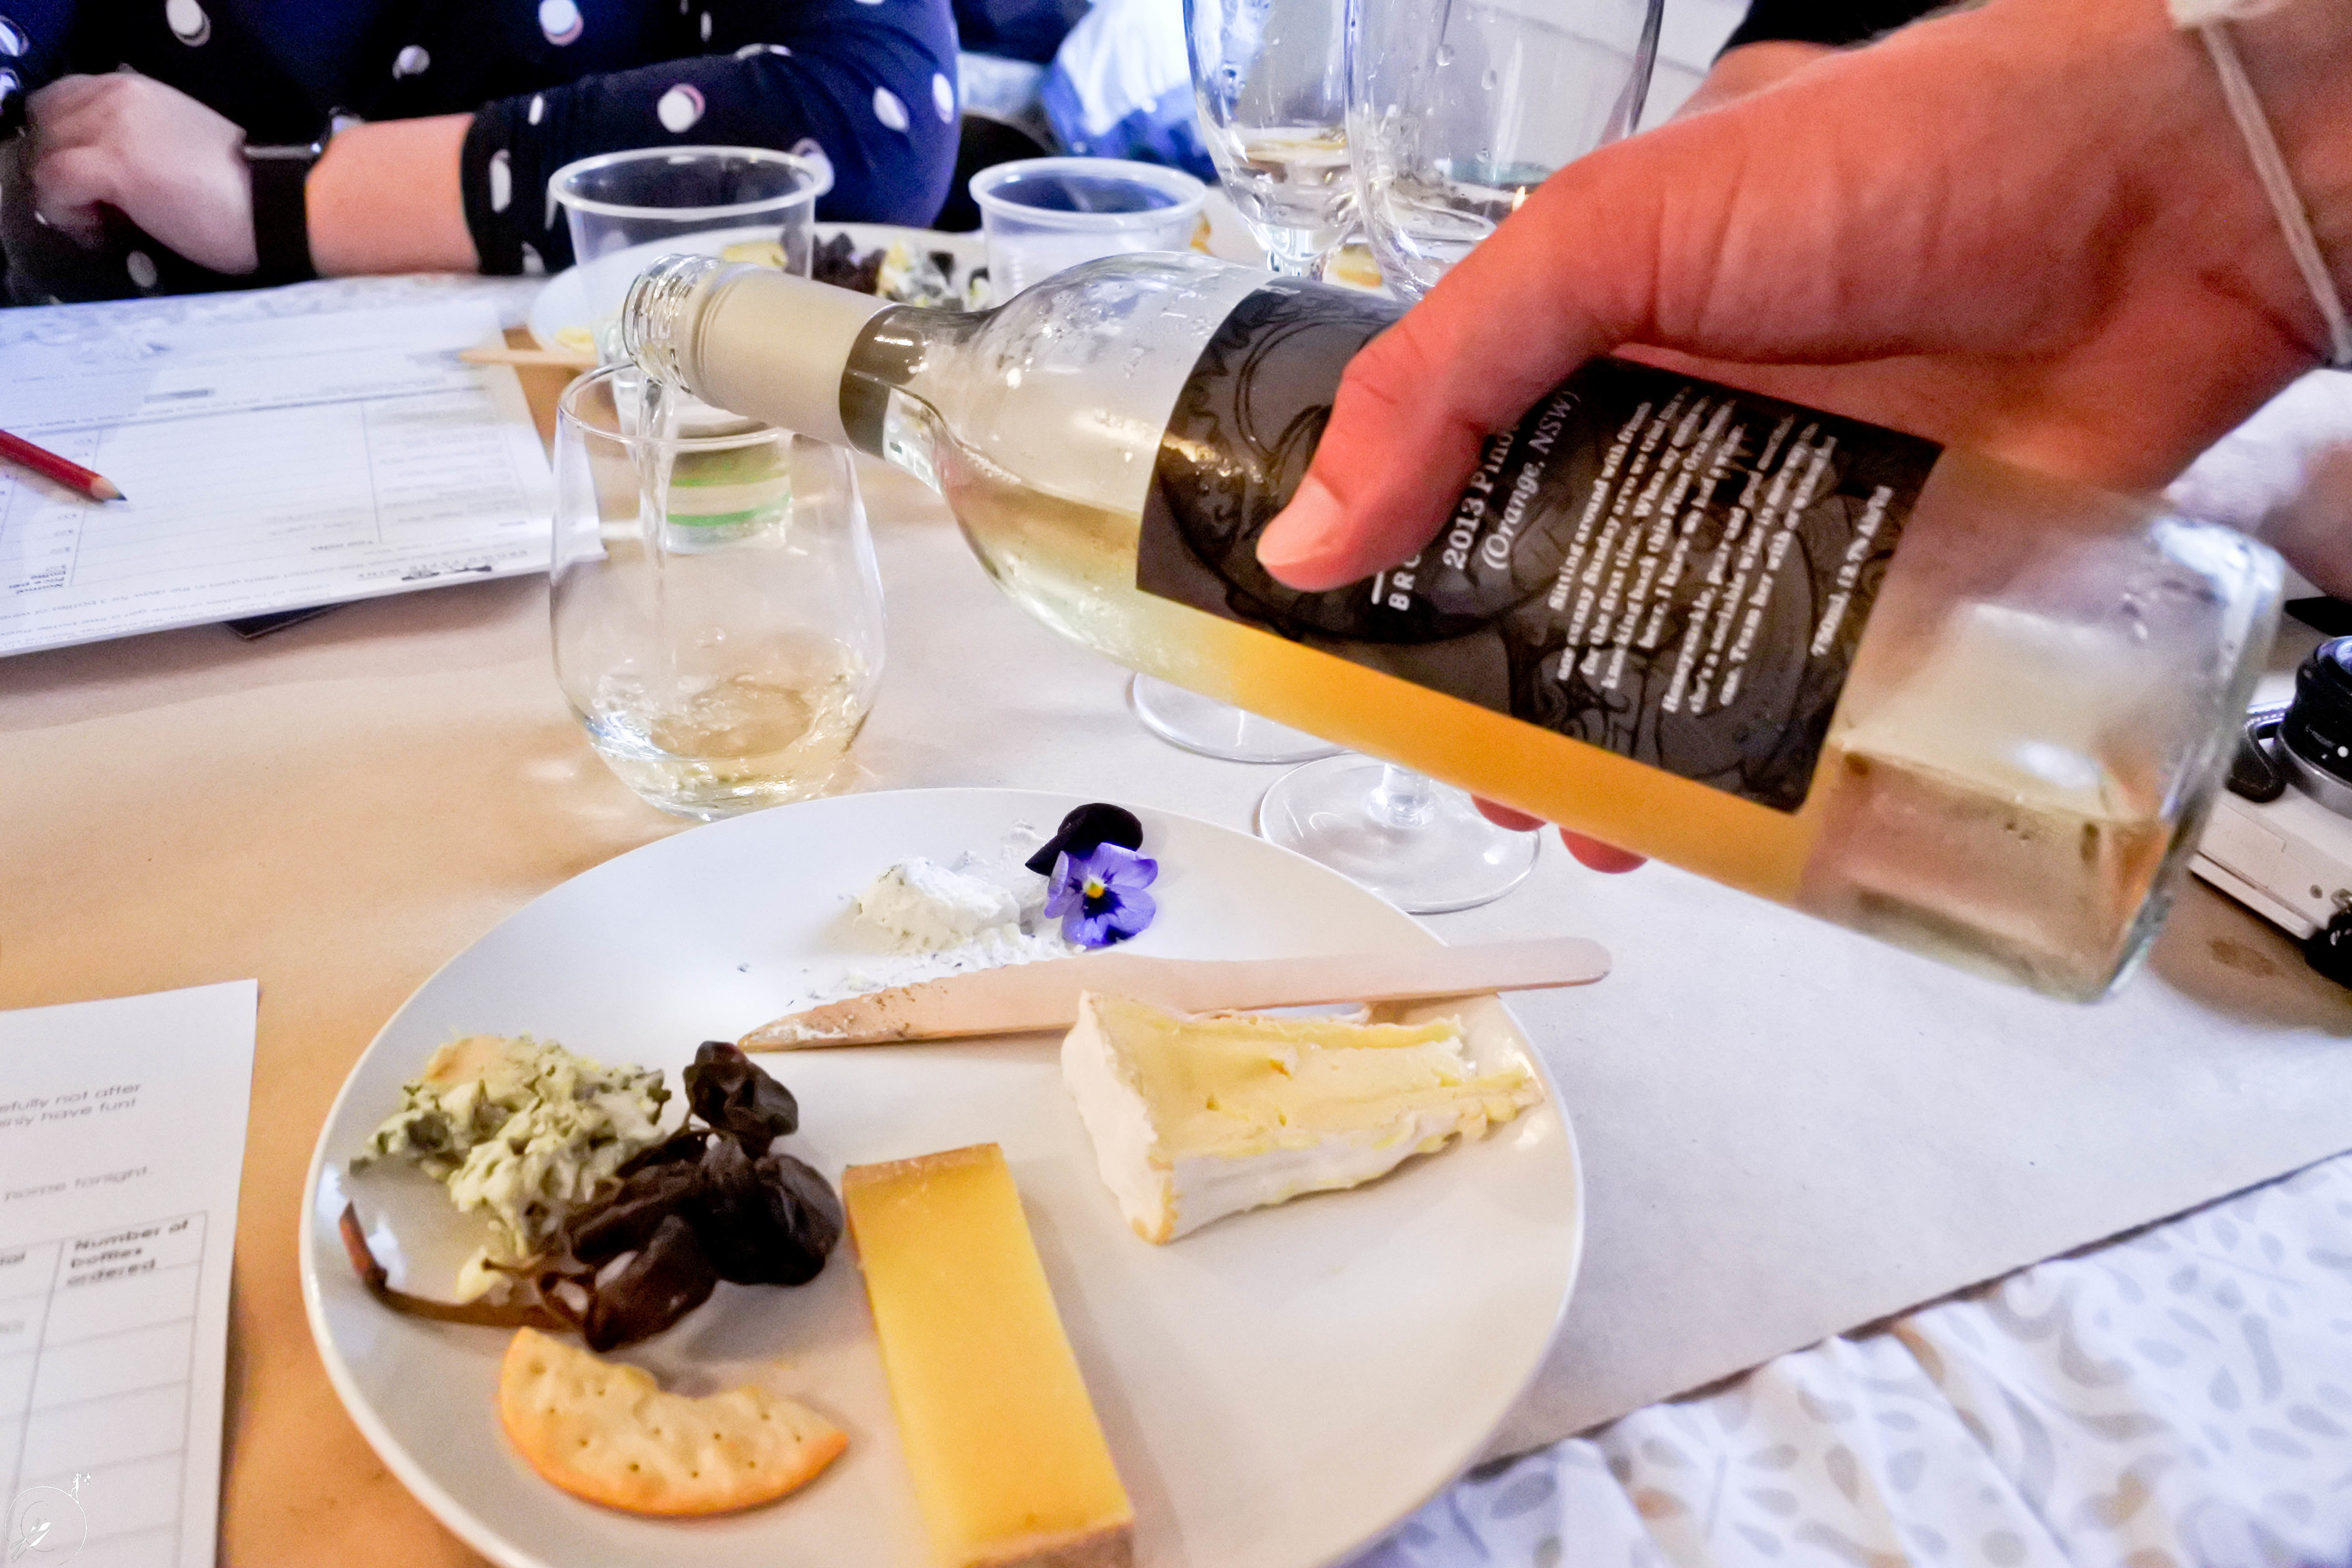 Wine poured next to cheese plate.